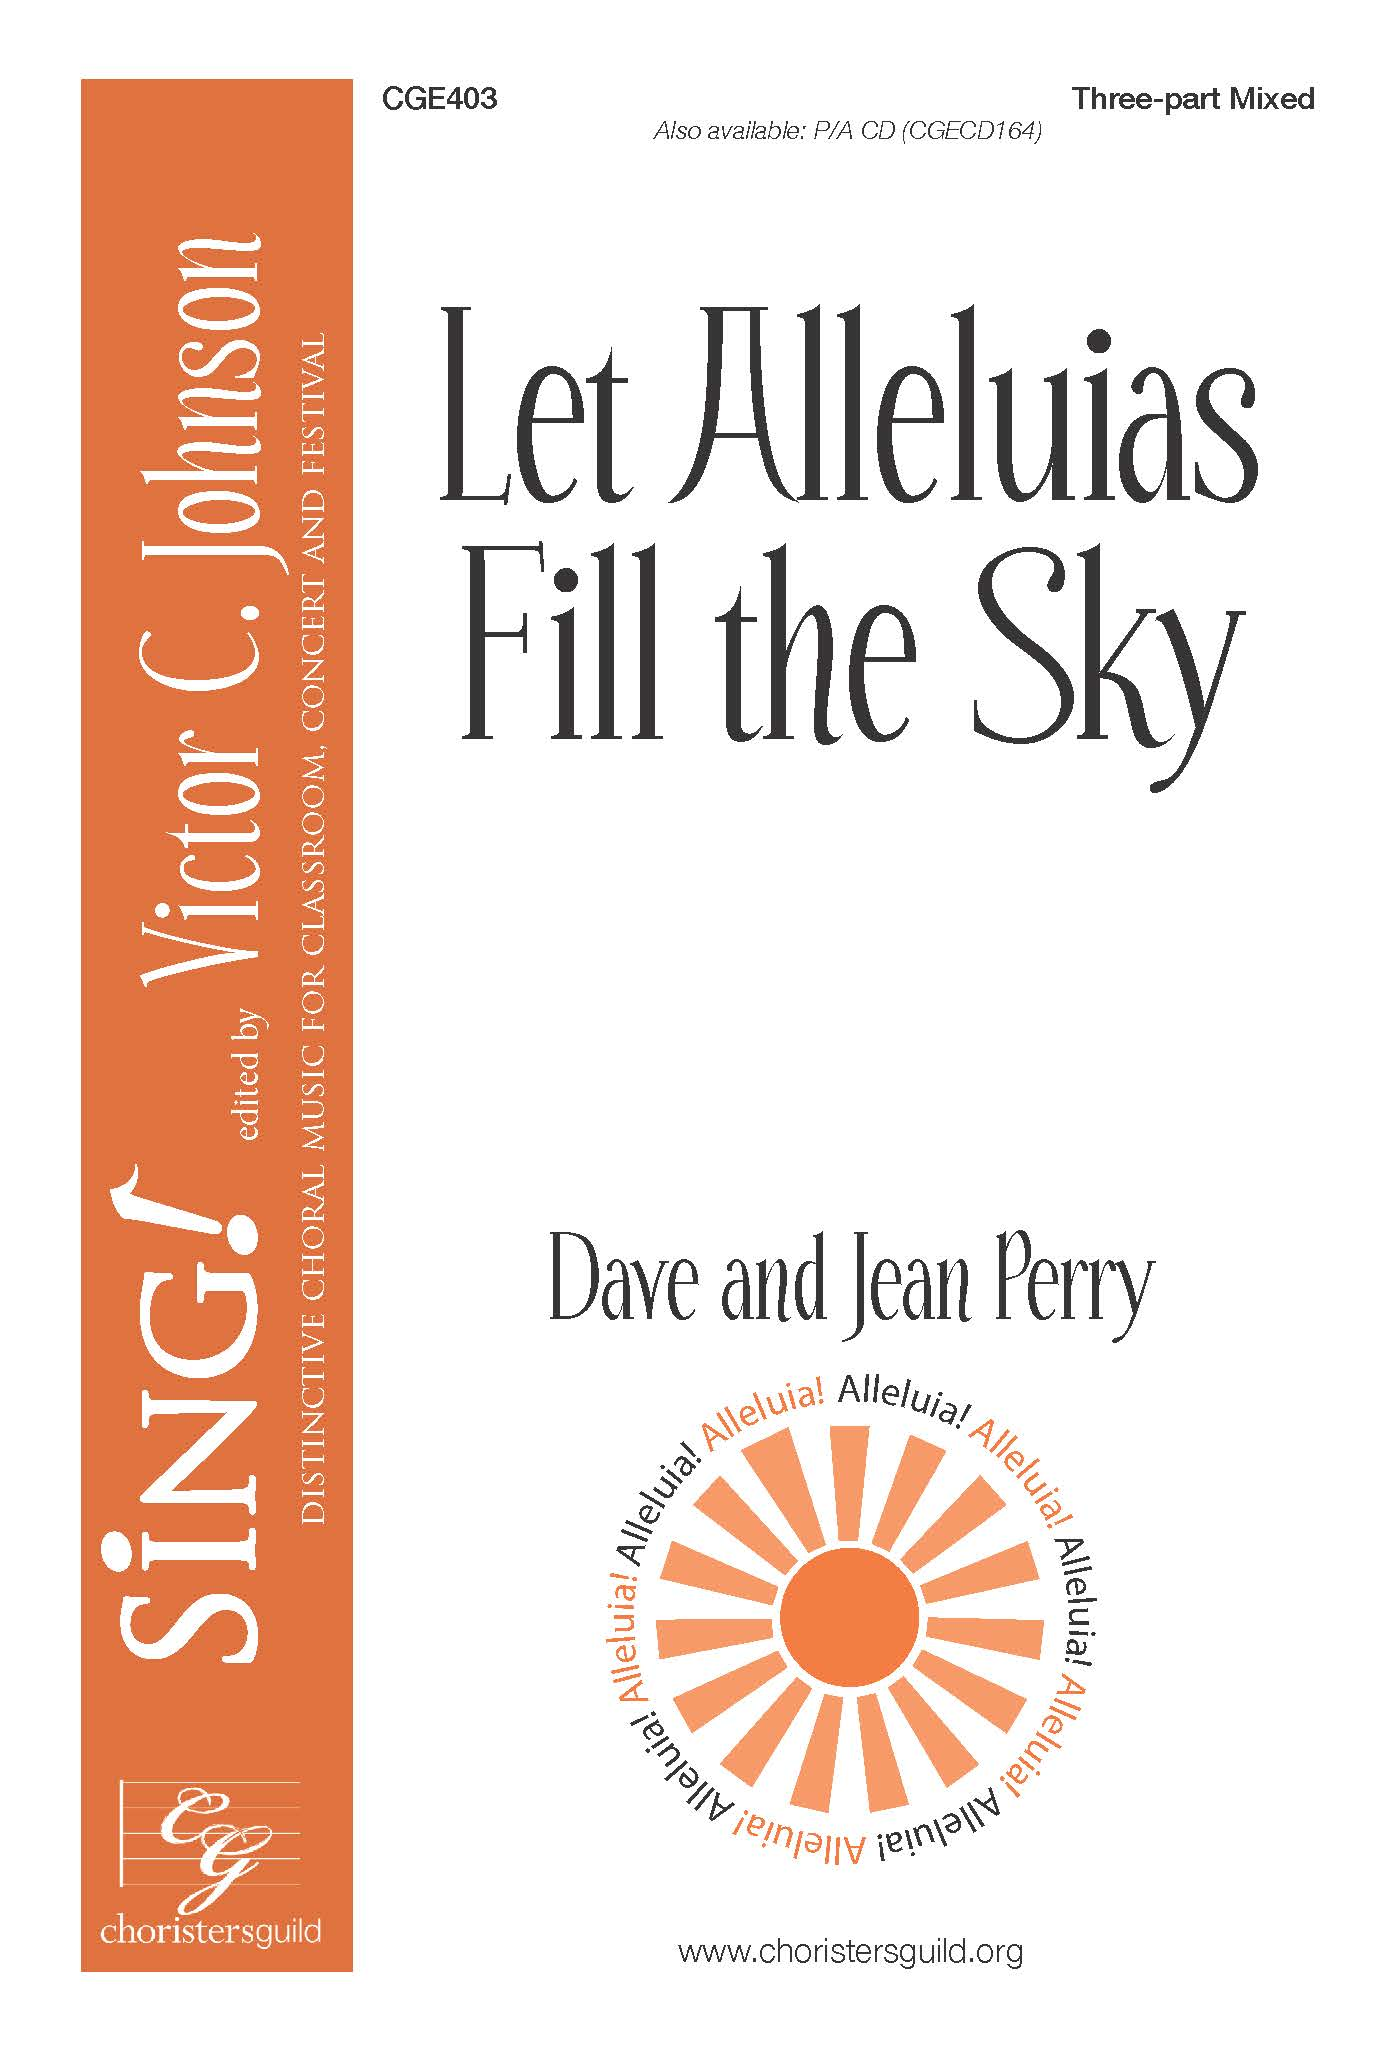 Let Alleluias Fill the Sky - Three-part Mixed